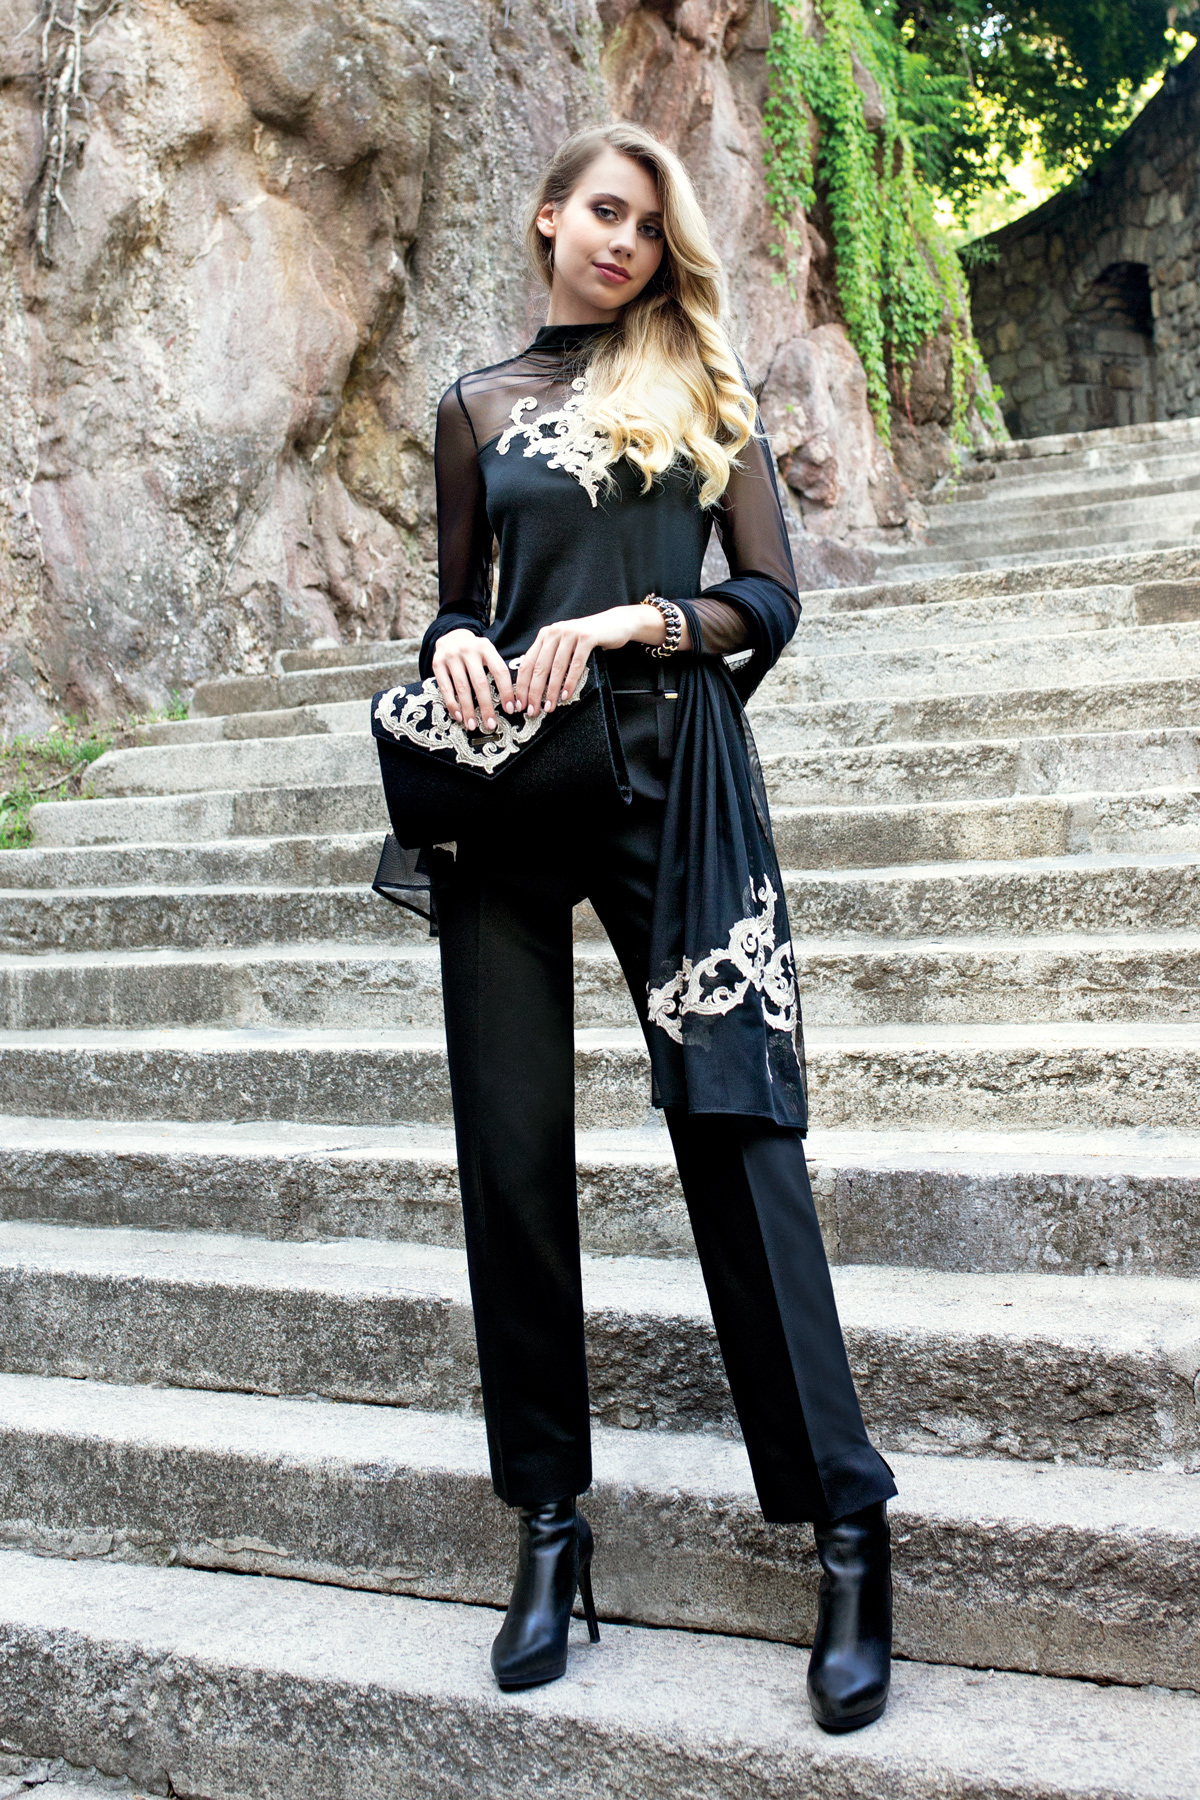 reputable site 5f25e 1bf71 Women's Luxury Clothes Online Store | Luna Fashion House